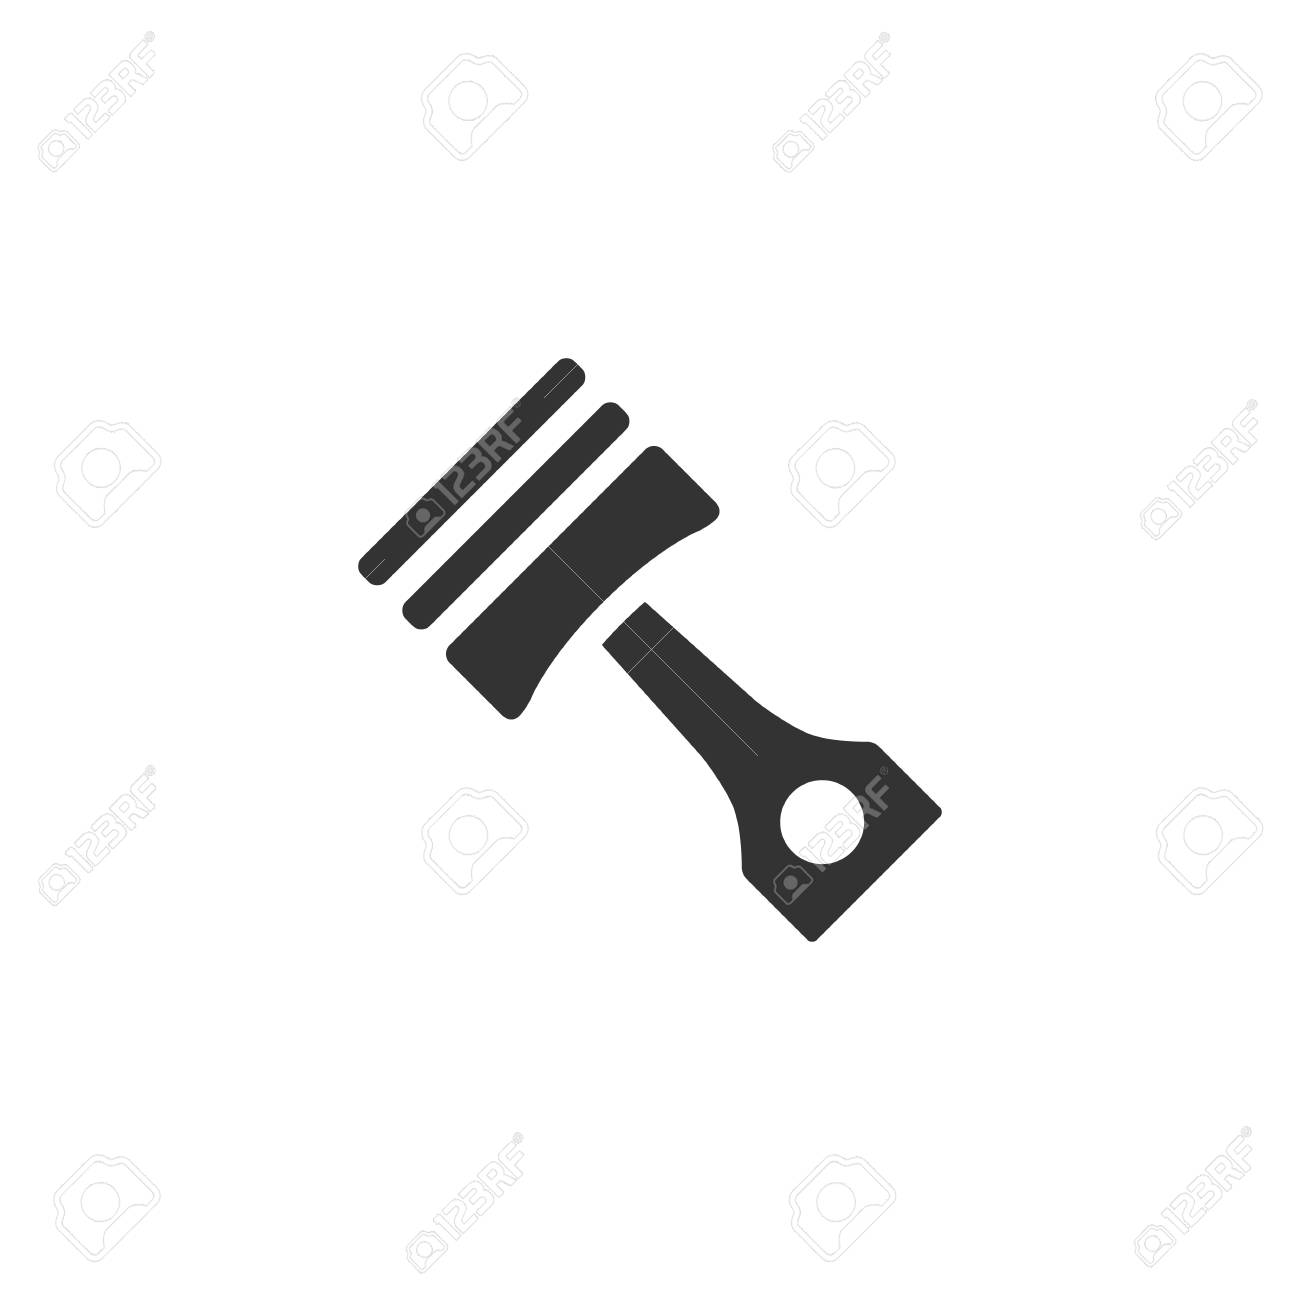 Piston Icon In Single Color Automotive Parts Motor Auto Car Royalty Free Cliparts Vectors And Stock Illustration Image 70488977